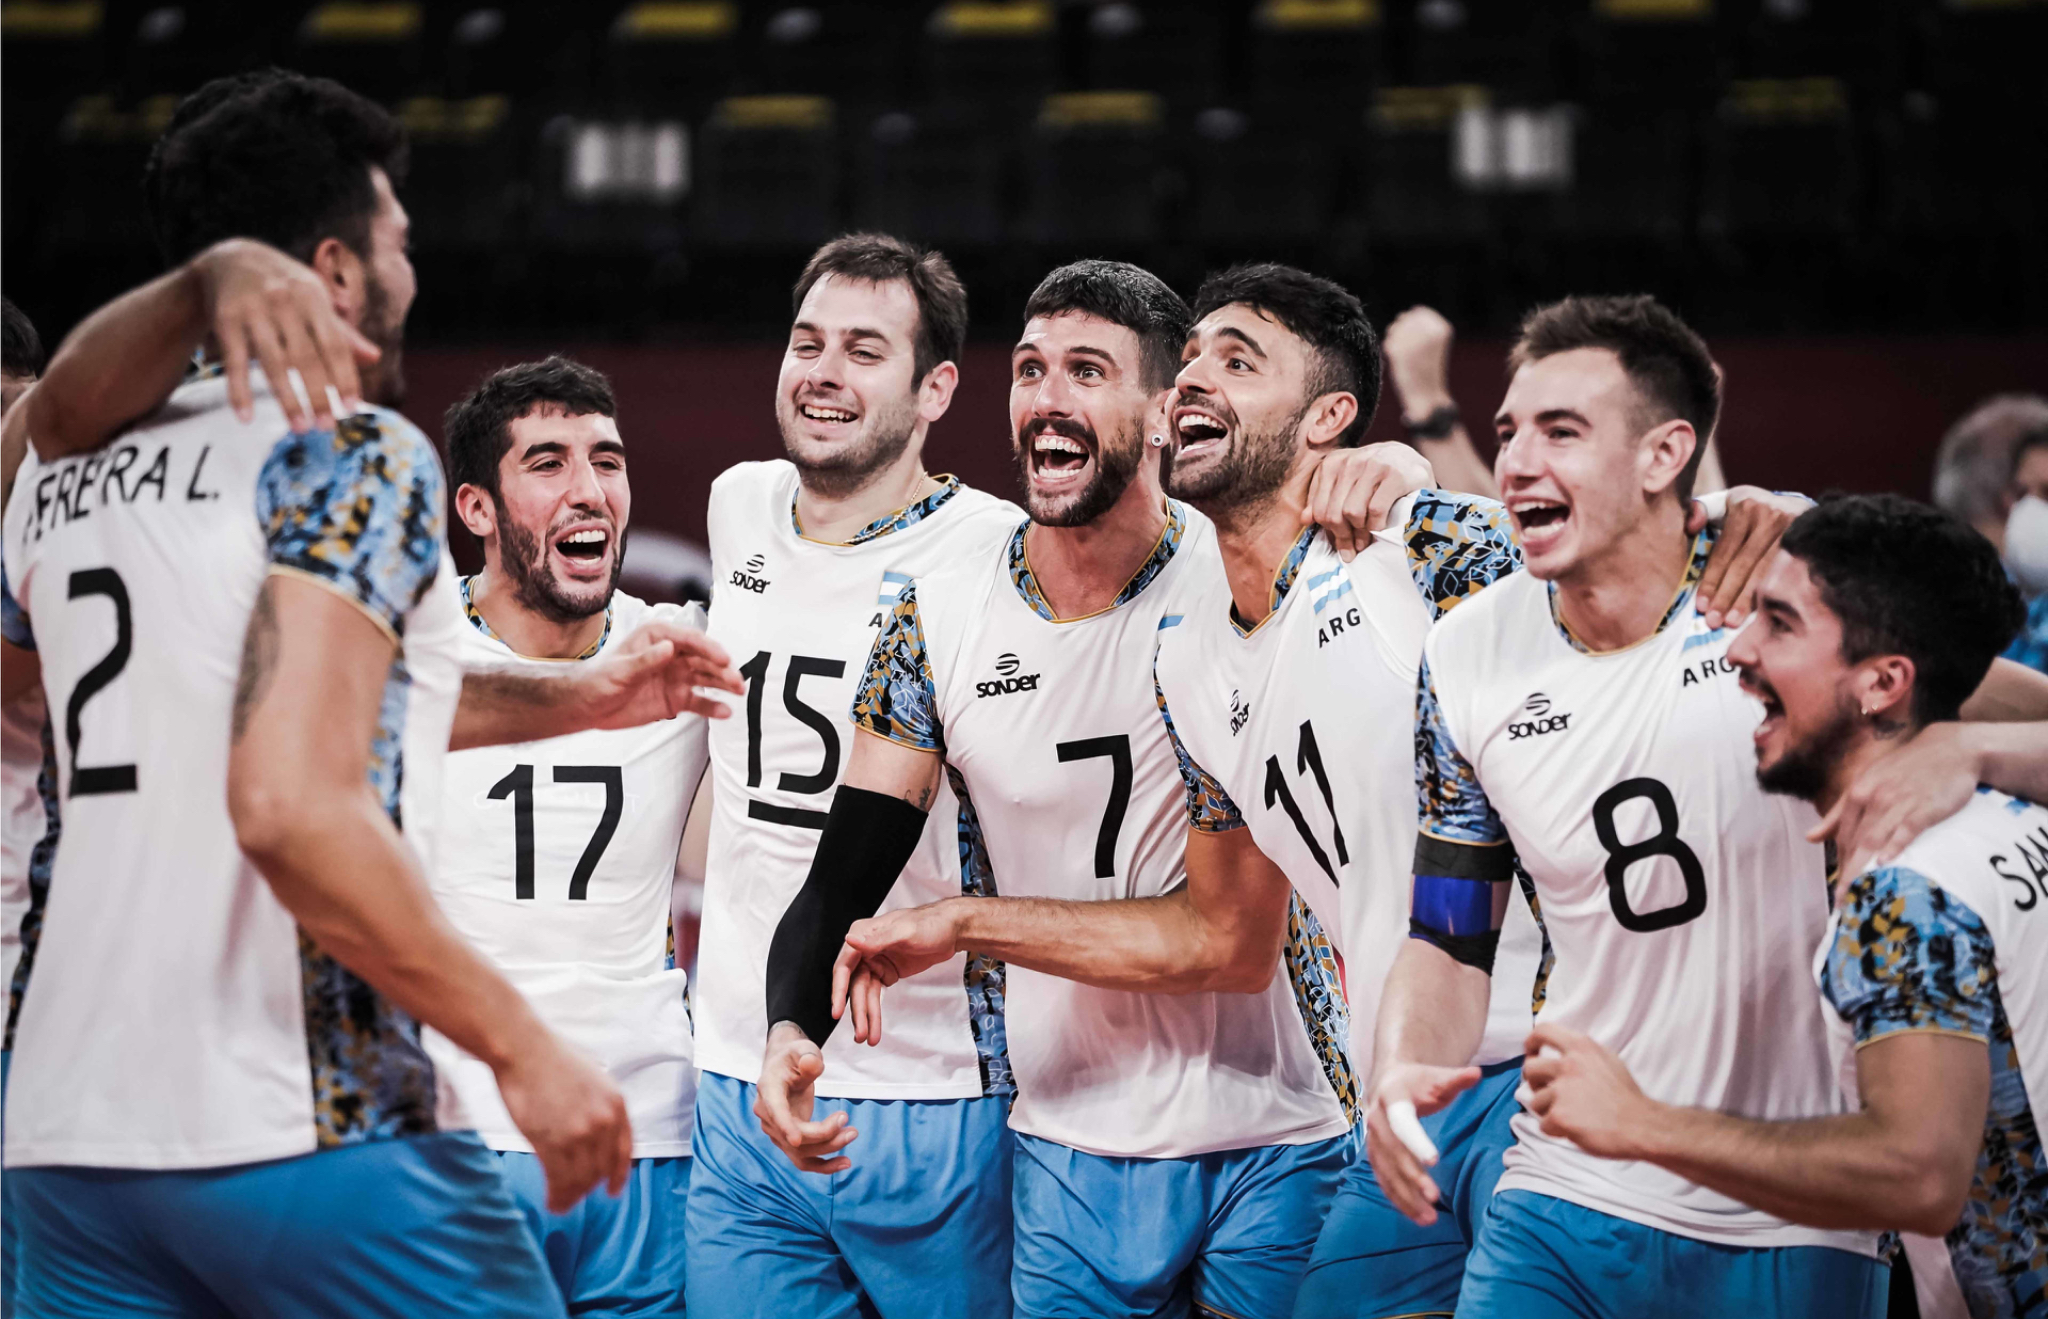 Tokyo 2020: What a stunner! Argentina eliminates Italy and flies to semifinals